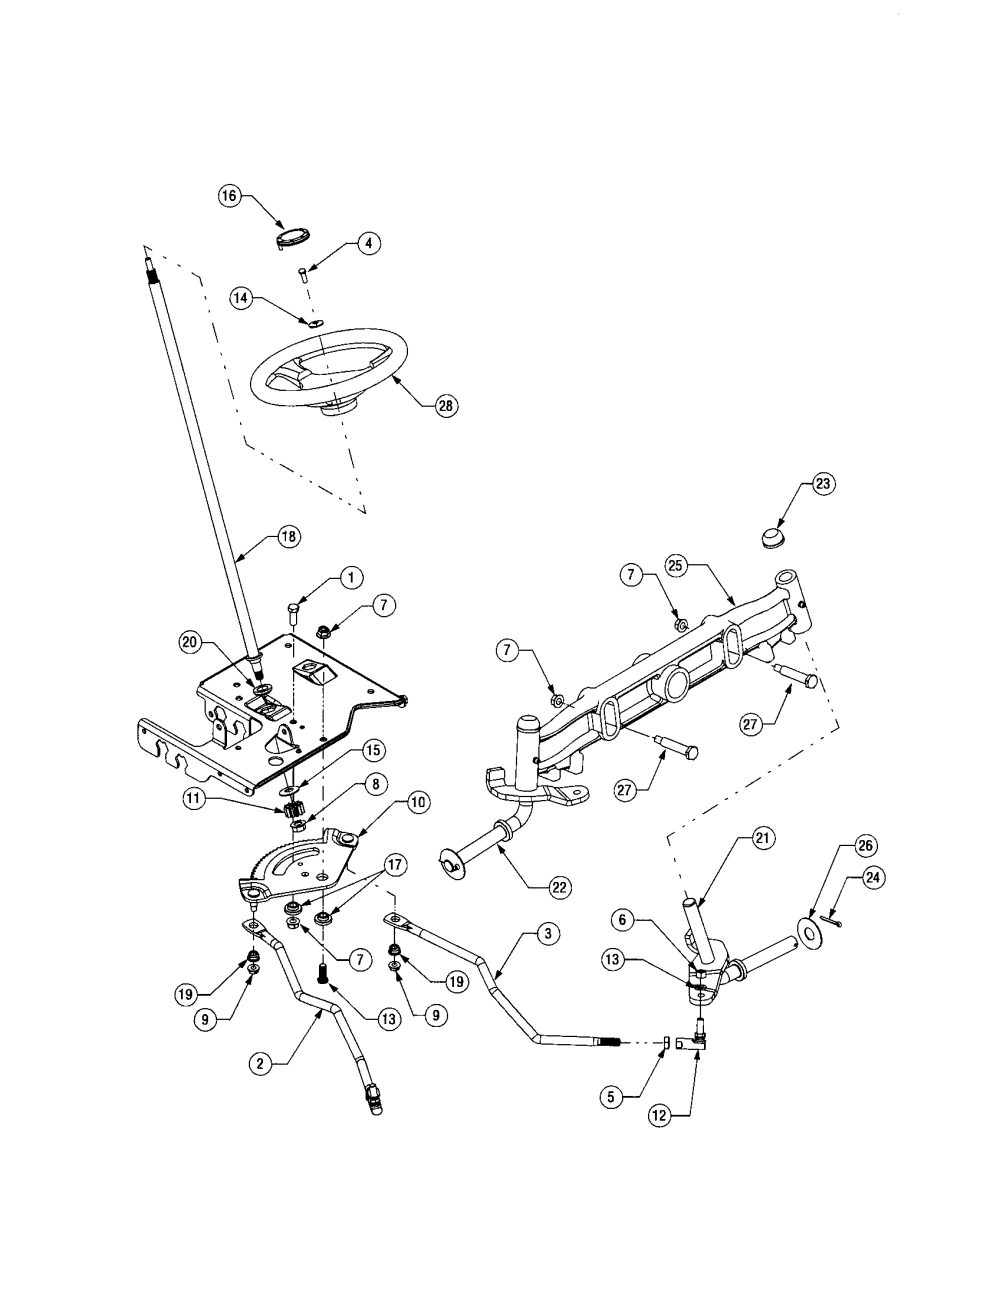 medium resolution of toro lx420 steering diagram